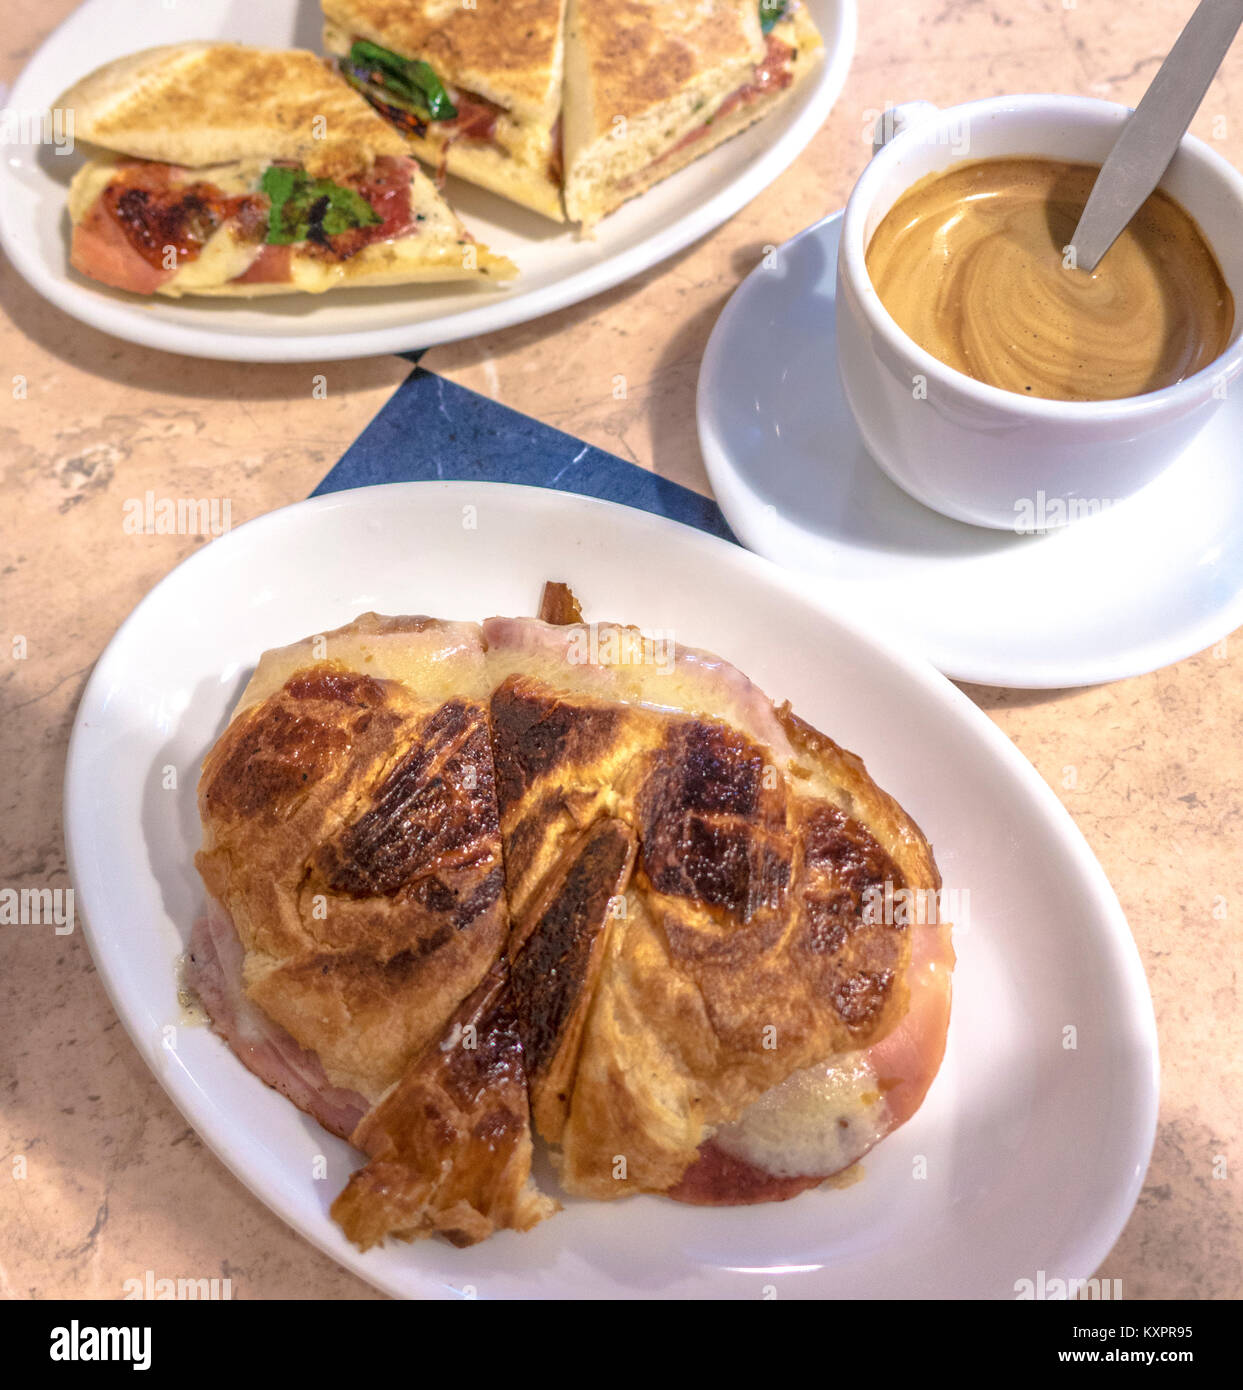 Italian cafe in London. Lunchtime food and drink. Cup of espresso coffee alongside a meal of ham and brie panini - Stock Image